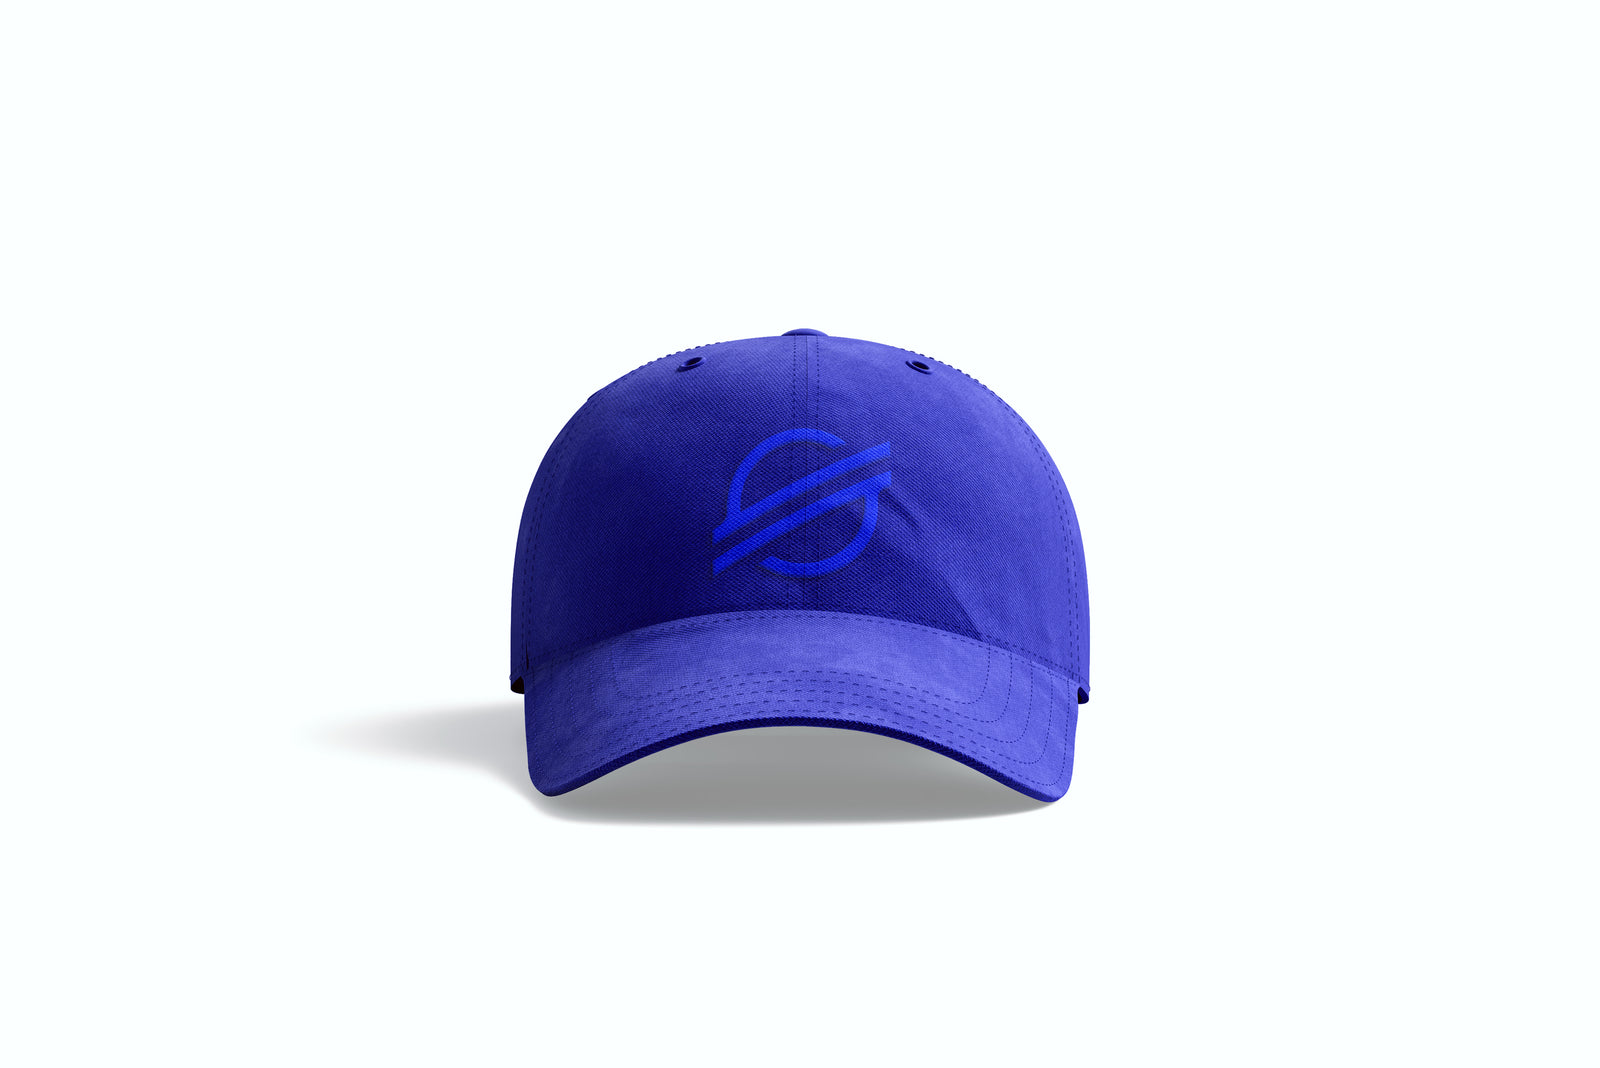 Stellar XLM Crypto Dad Hat